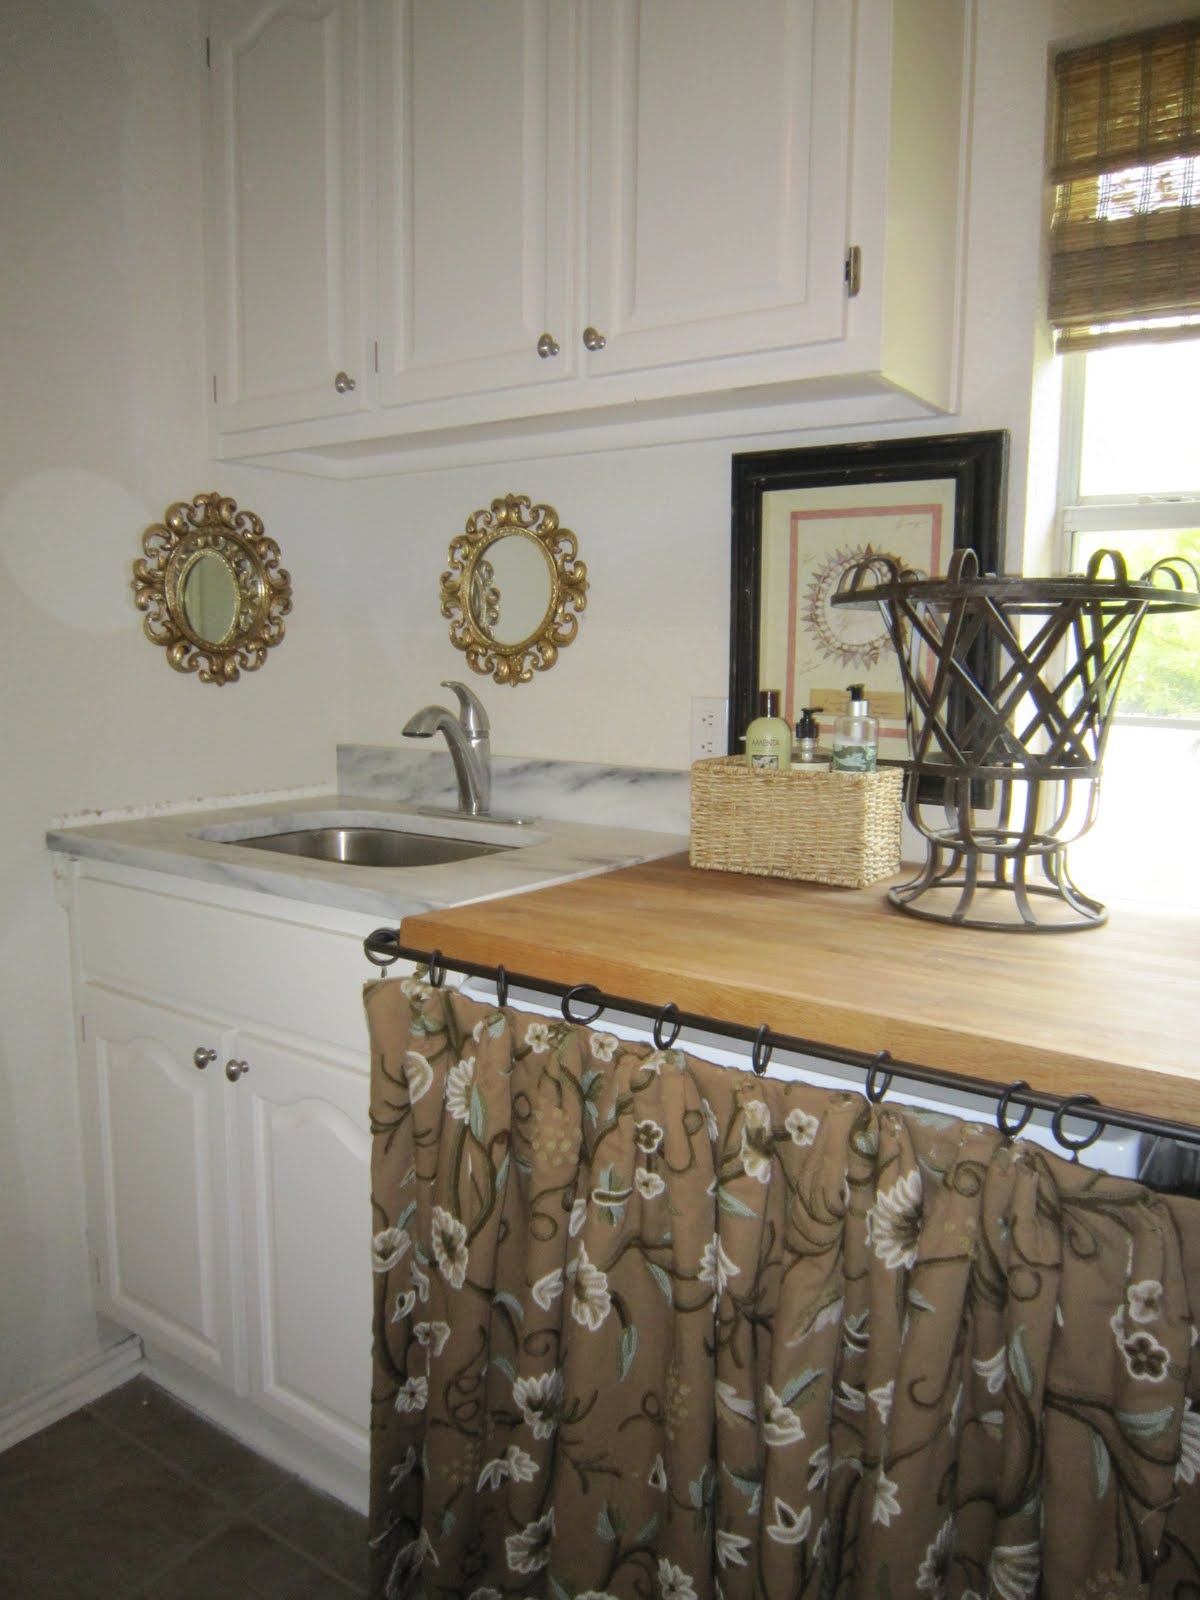 Stainless Steel Utility Sink with Cabifor Laundry Room